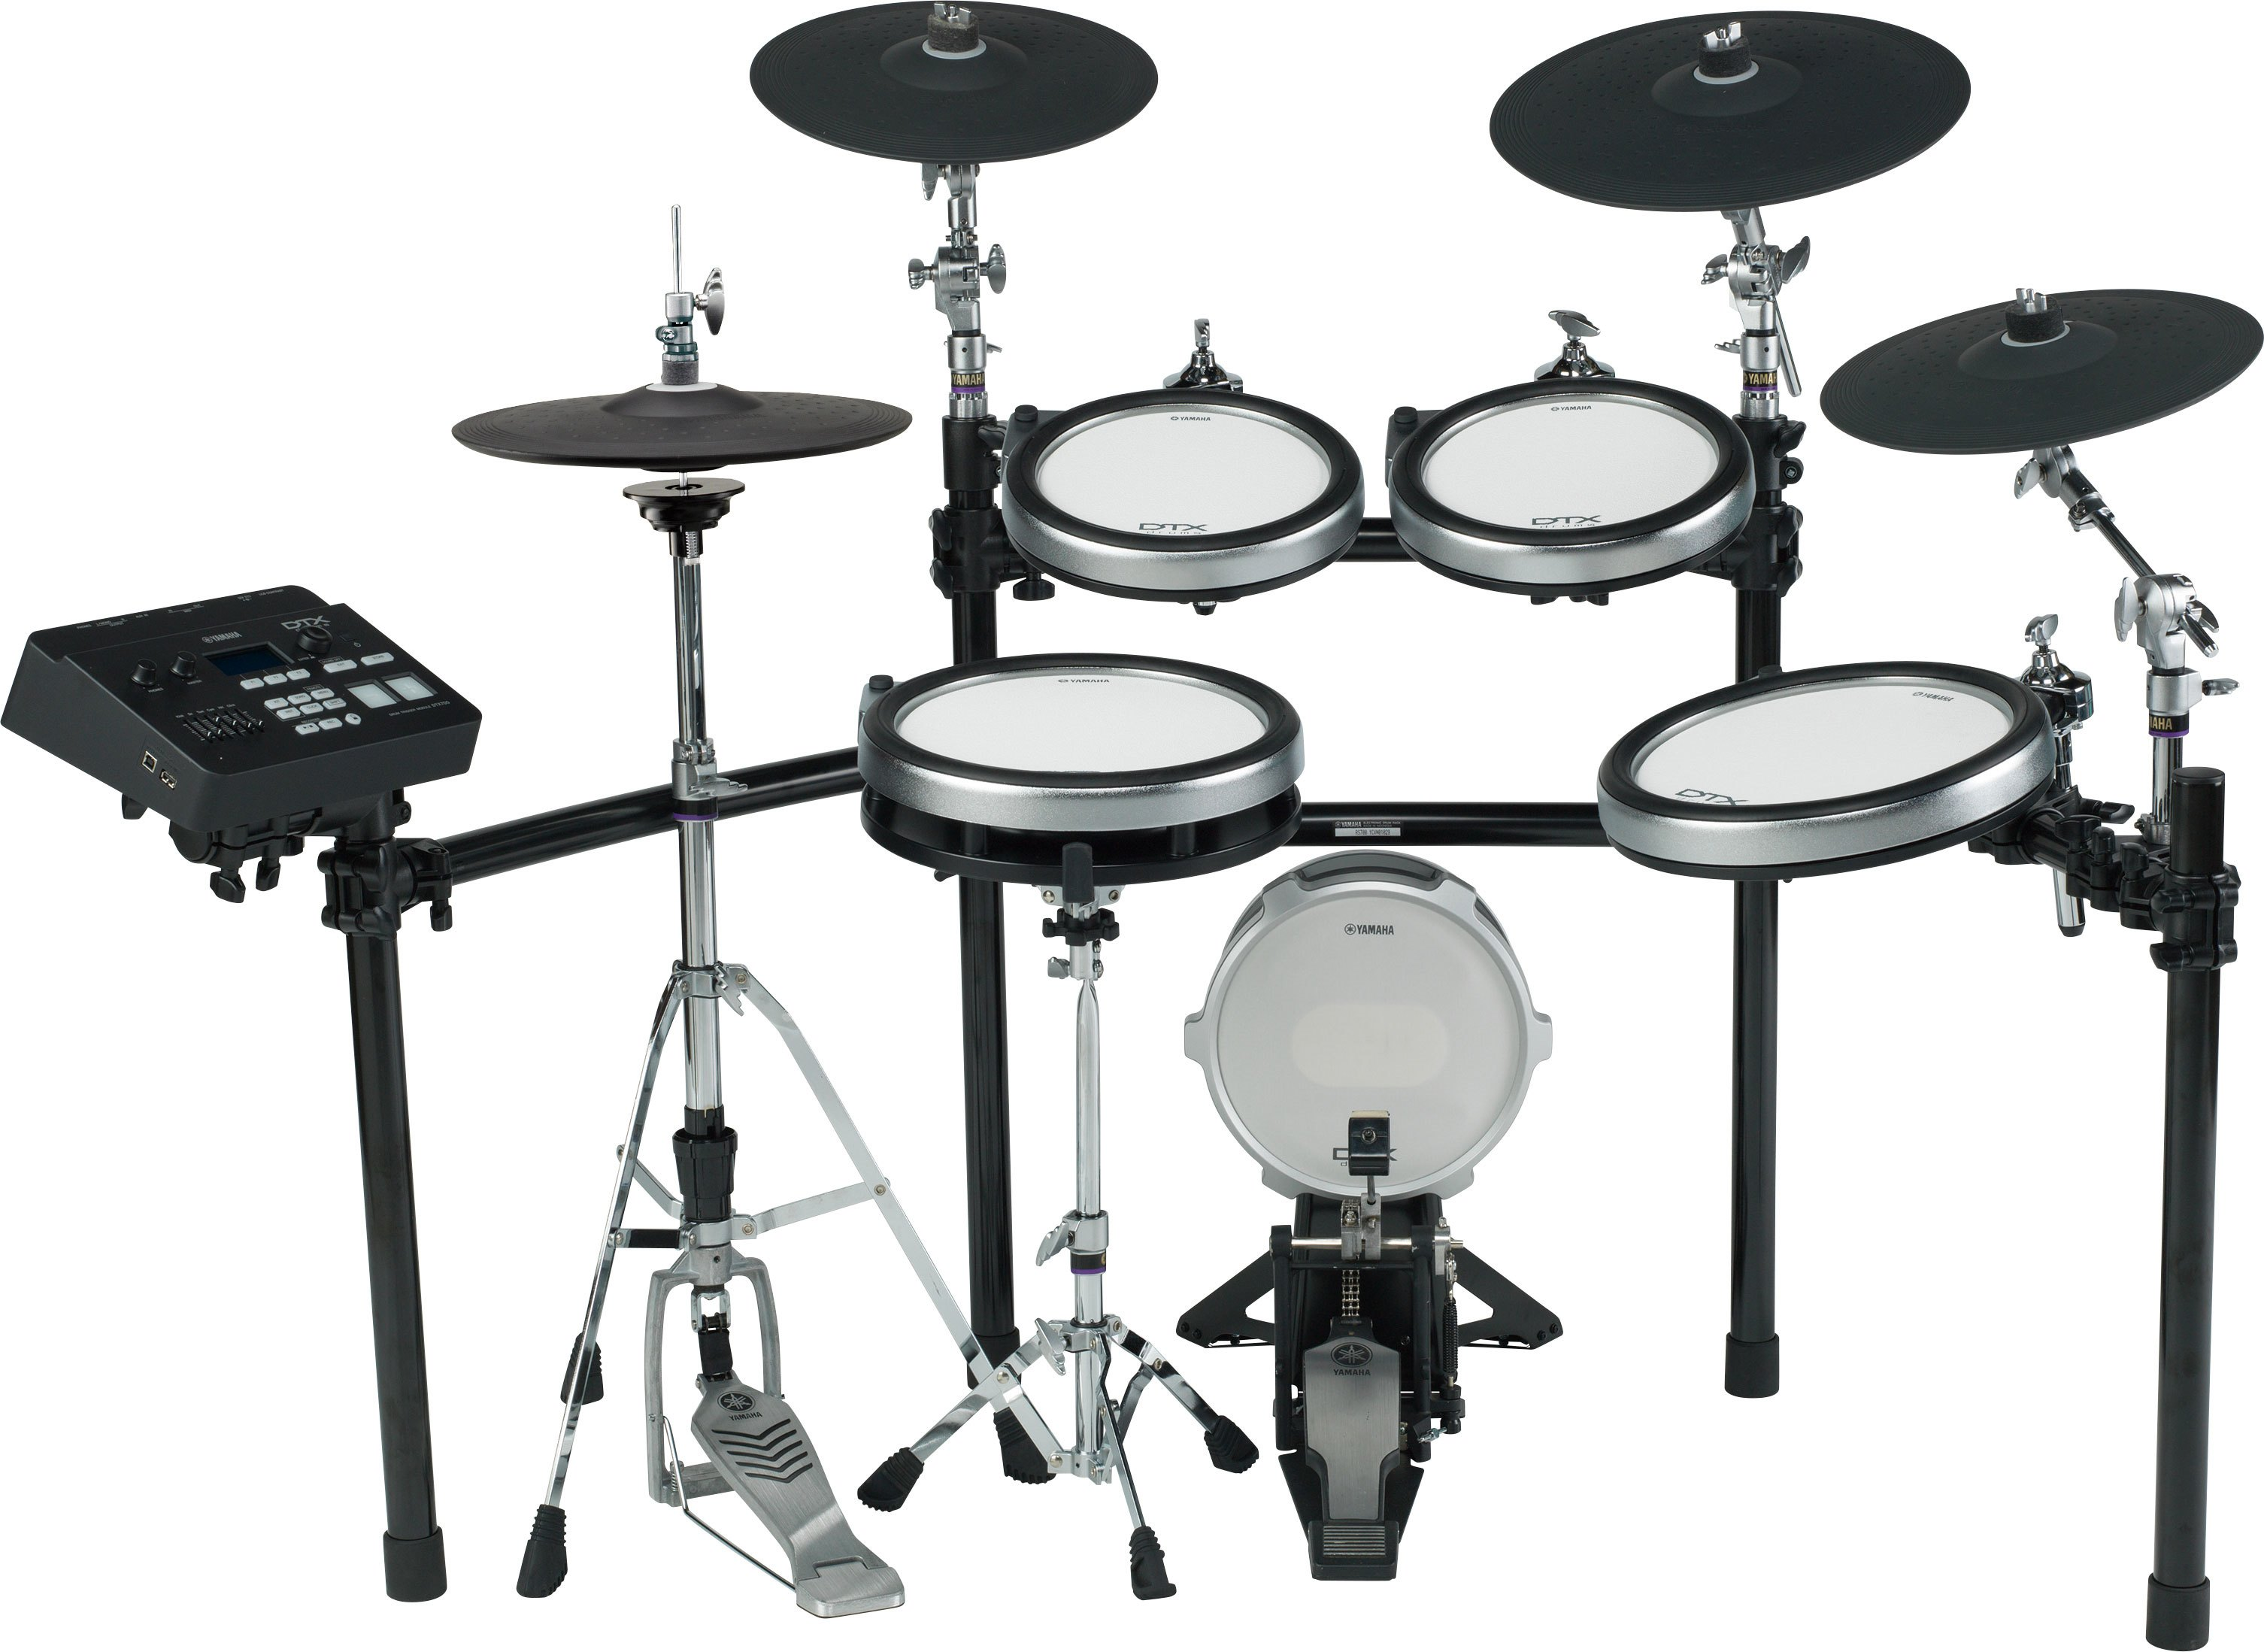 dtx700 series overview electronic drum kits. Black Bedroom Furniture Sets. Home Design Ideas